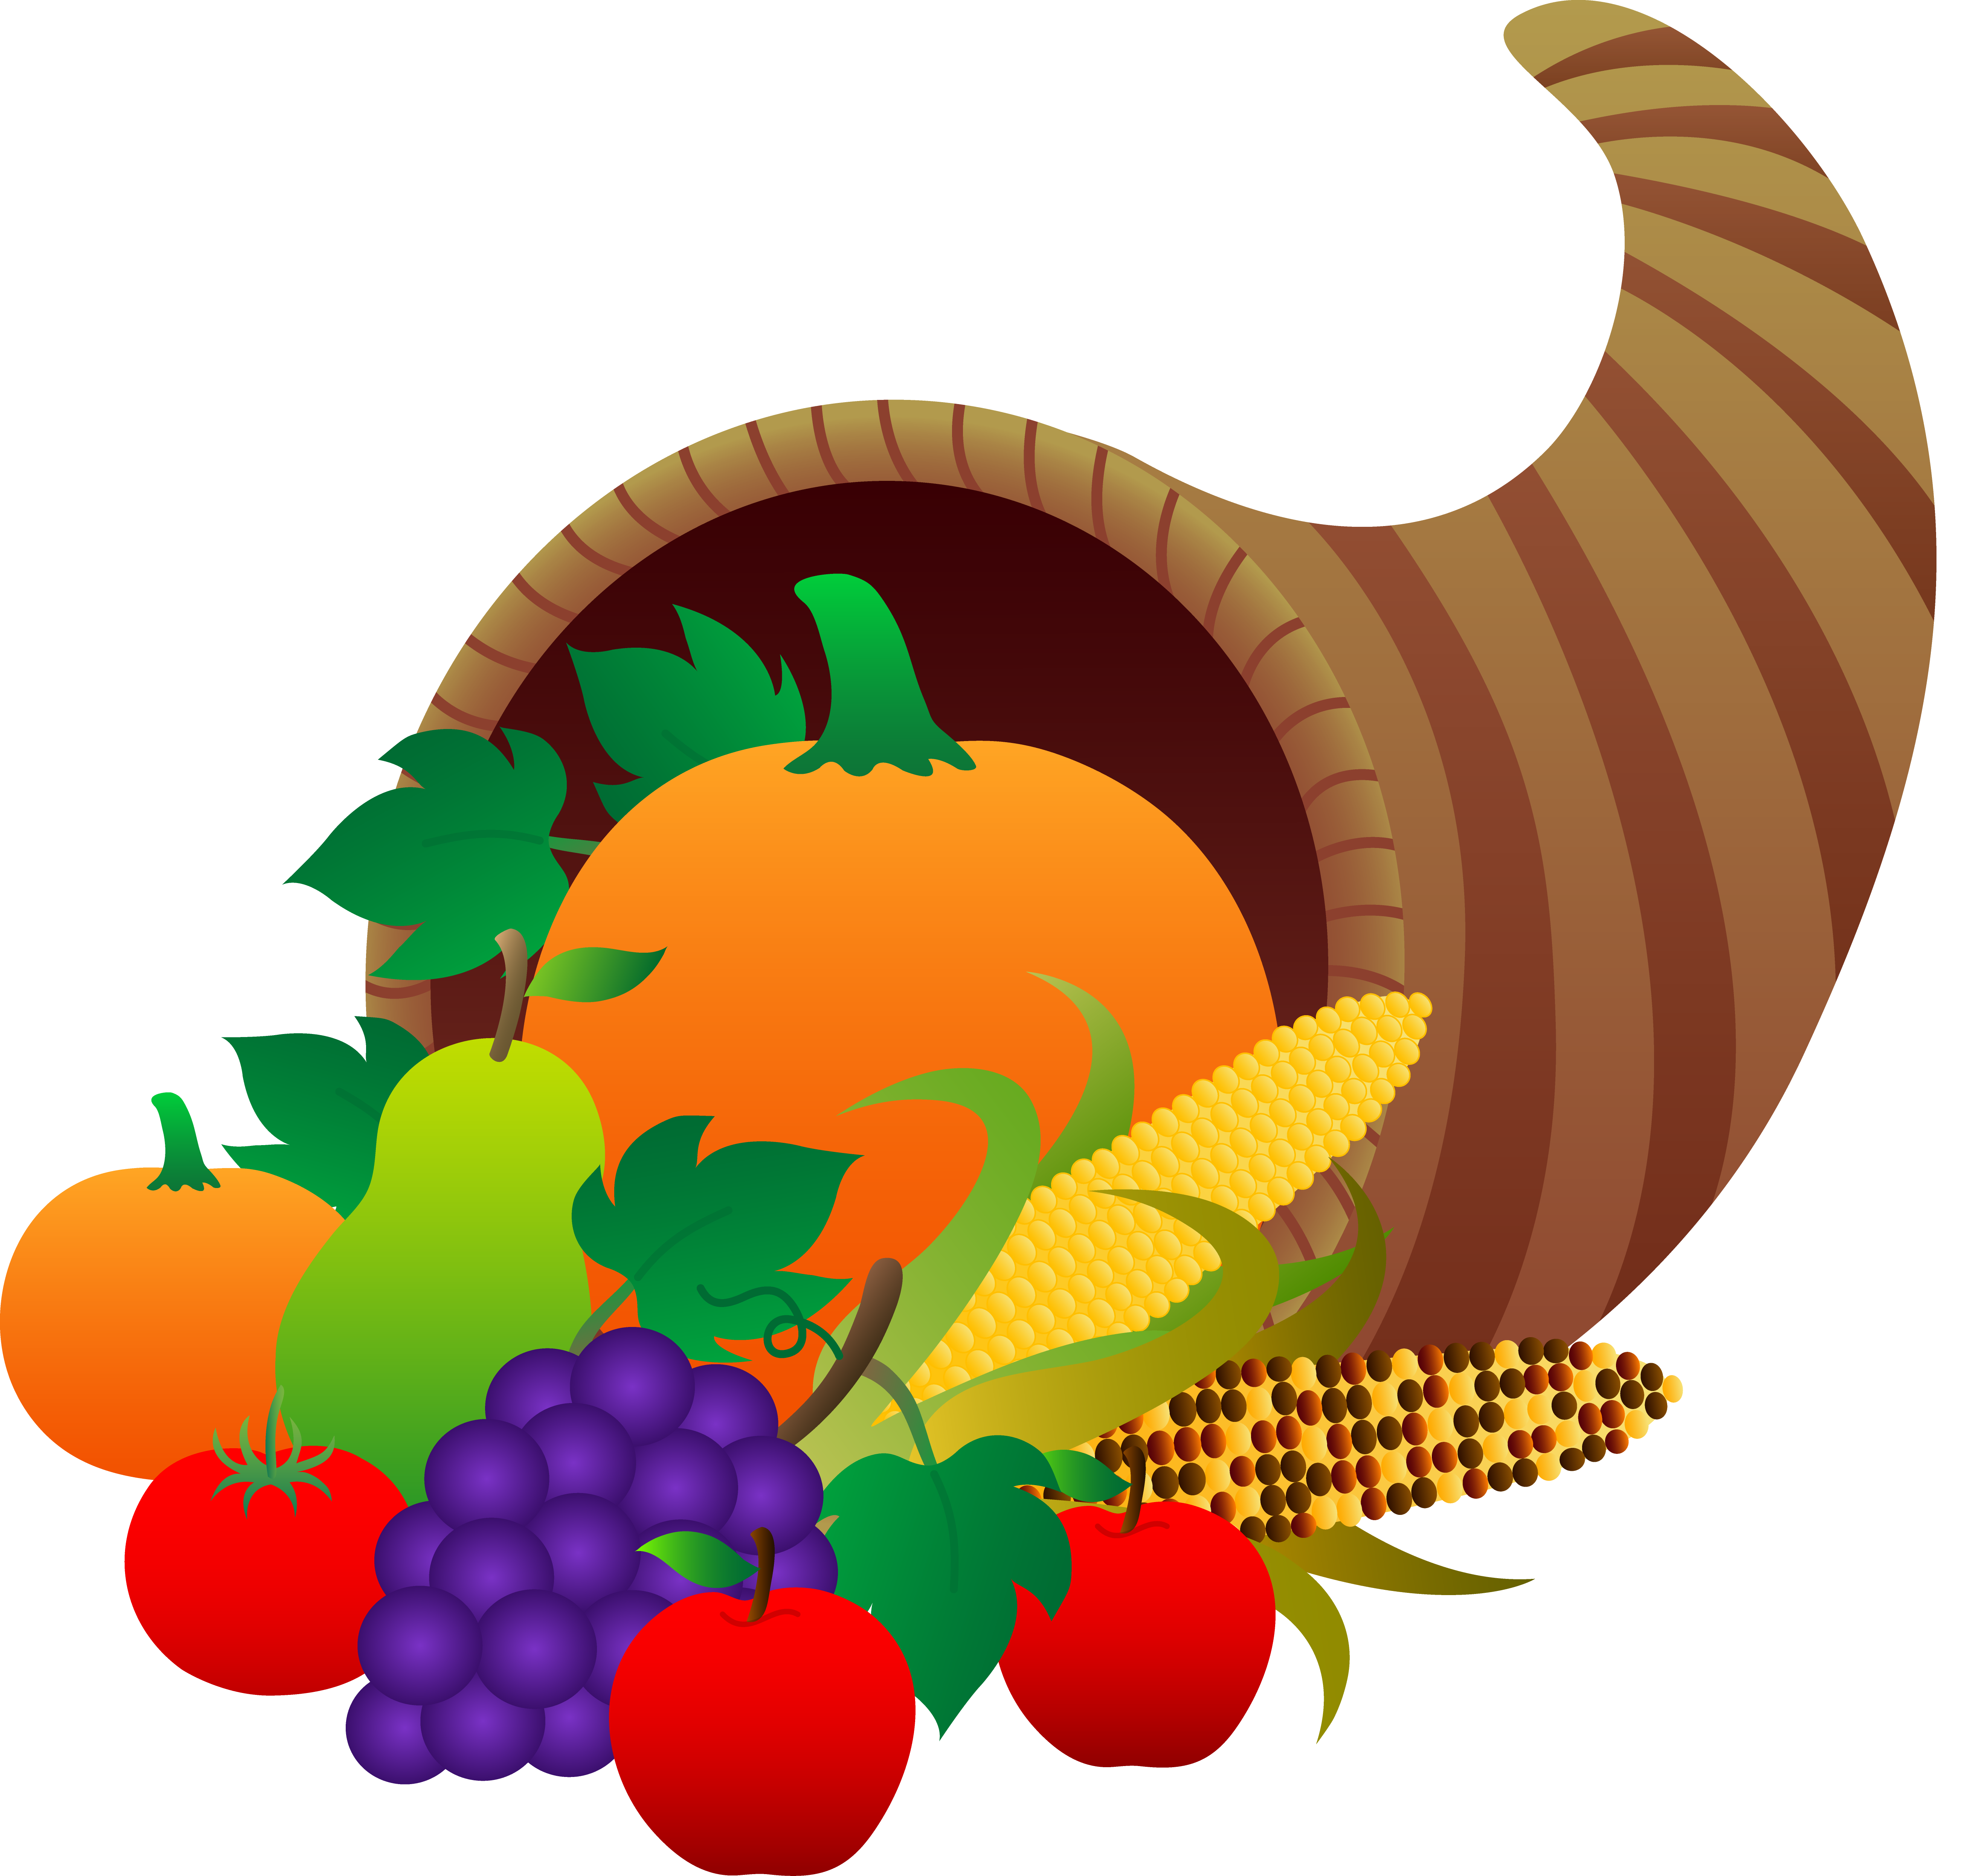 Fall harvest thanksgiving photo clipart picture free library Thanksgiving png clipart #33441 - Free Icons and PNG Backgrounds picture free library